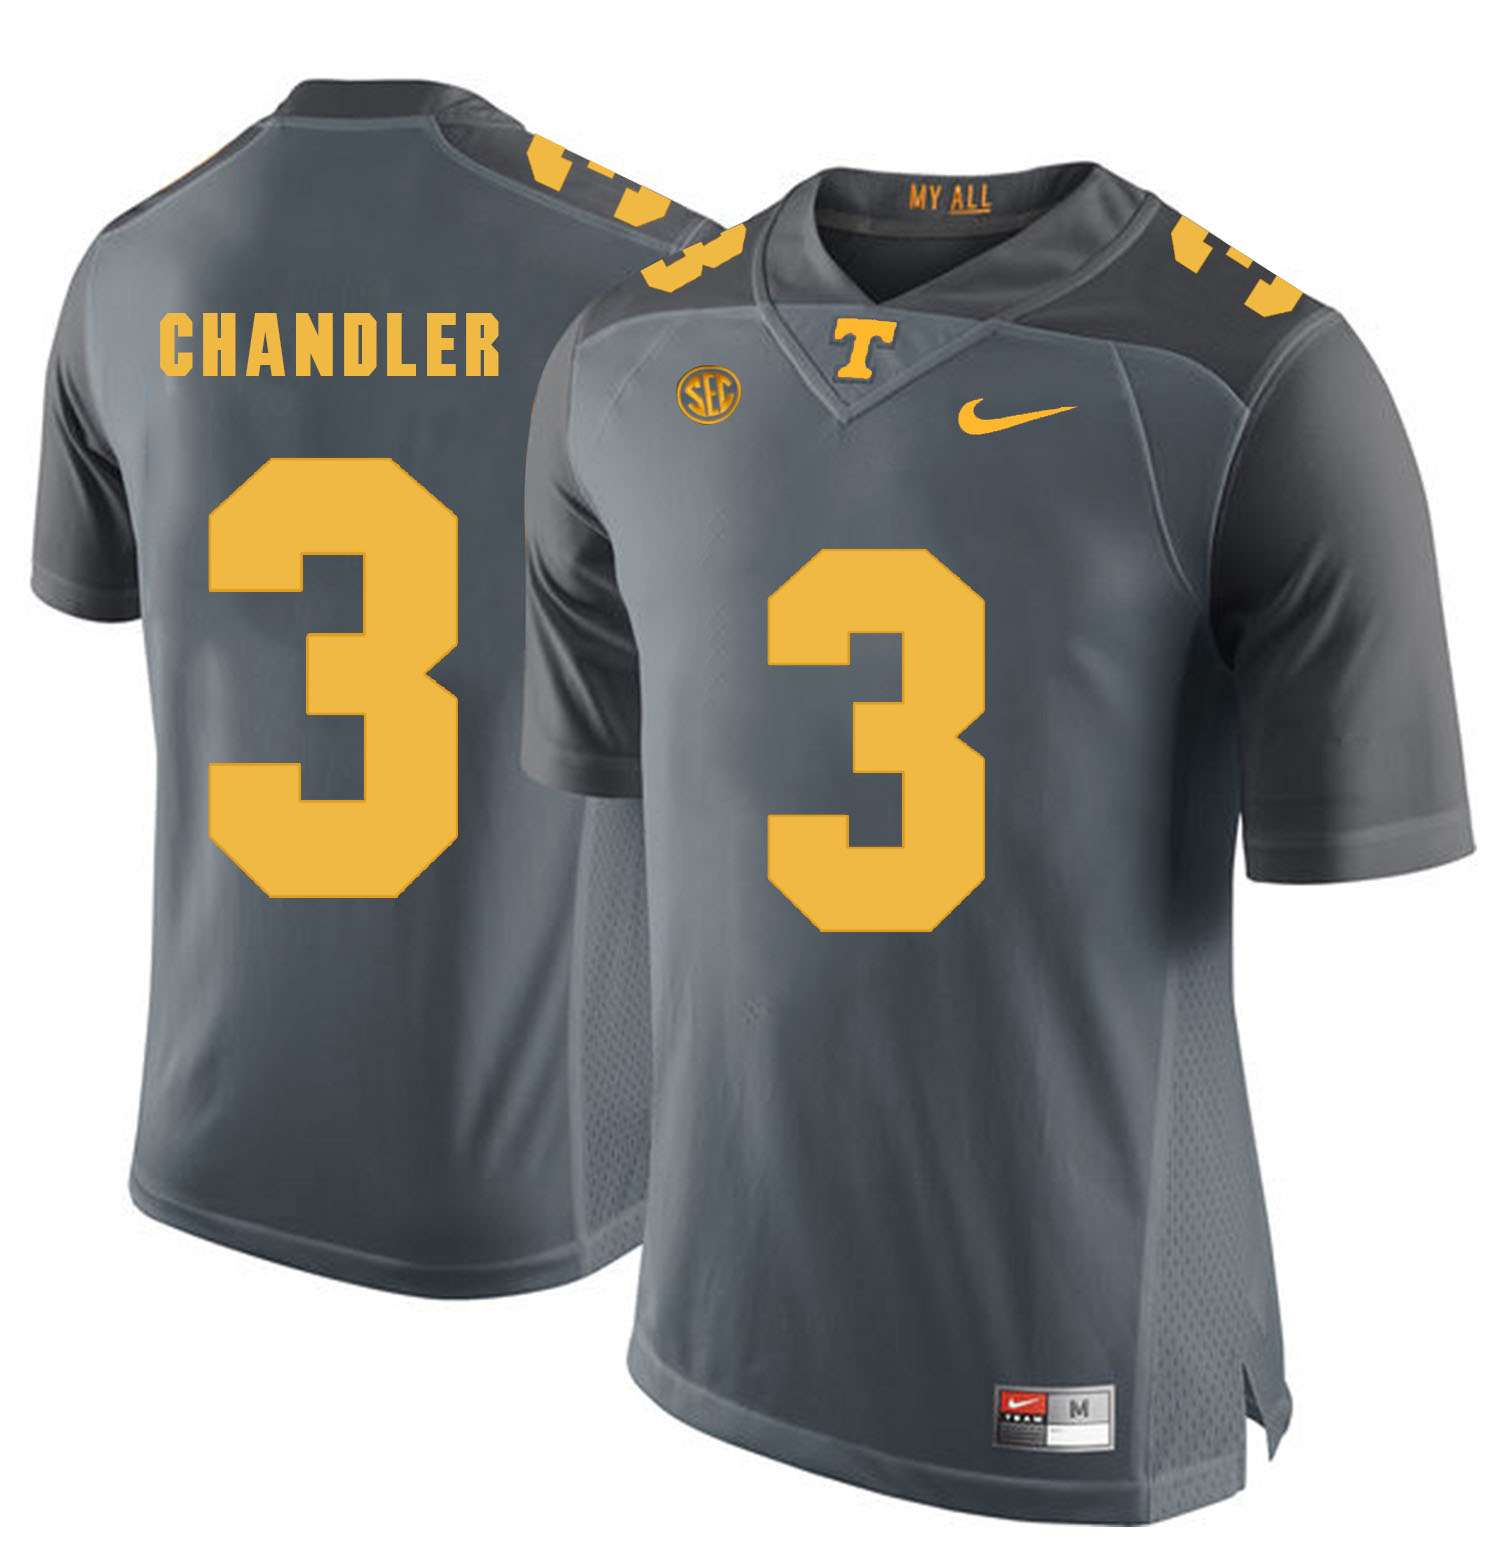 Tennessee Volunteers 3 White Ty Chandler Gray College Football Jersey